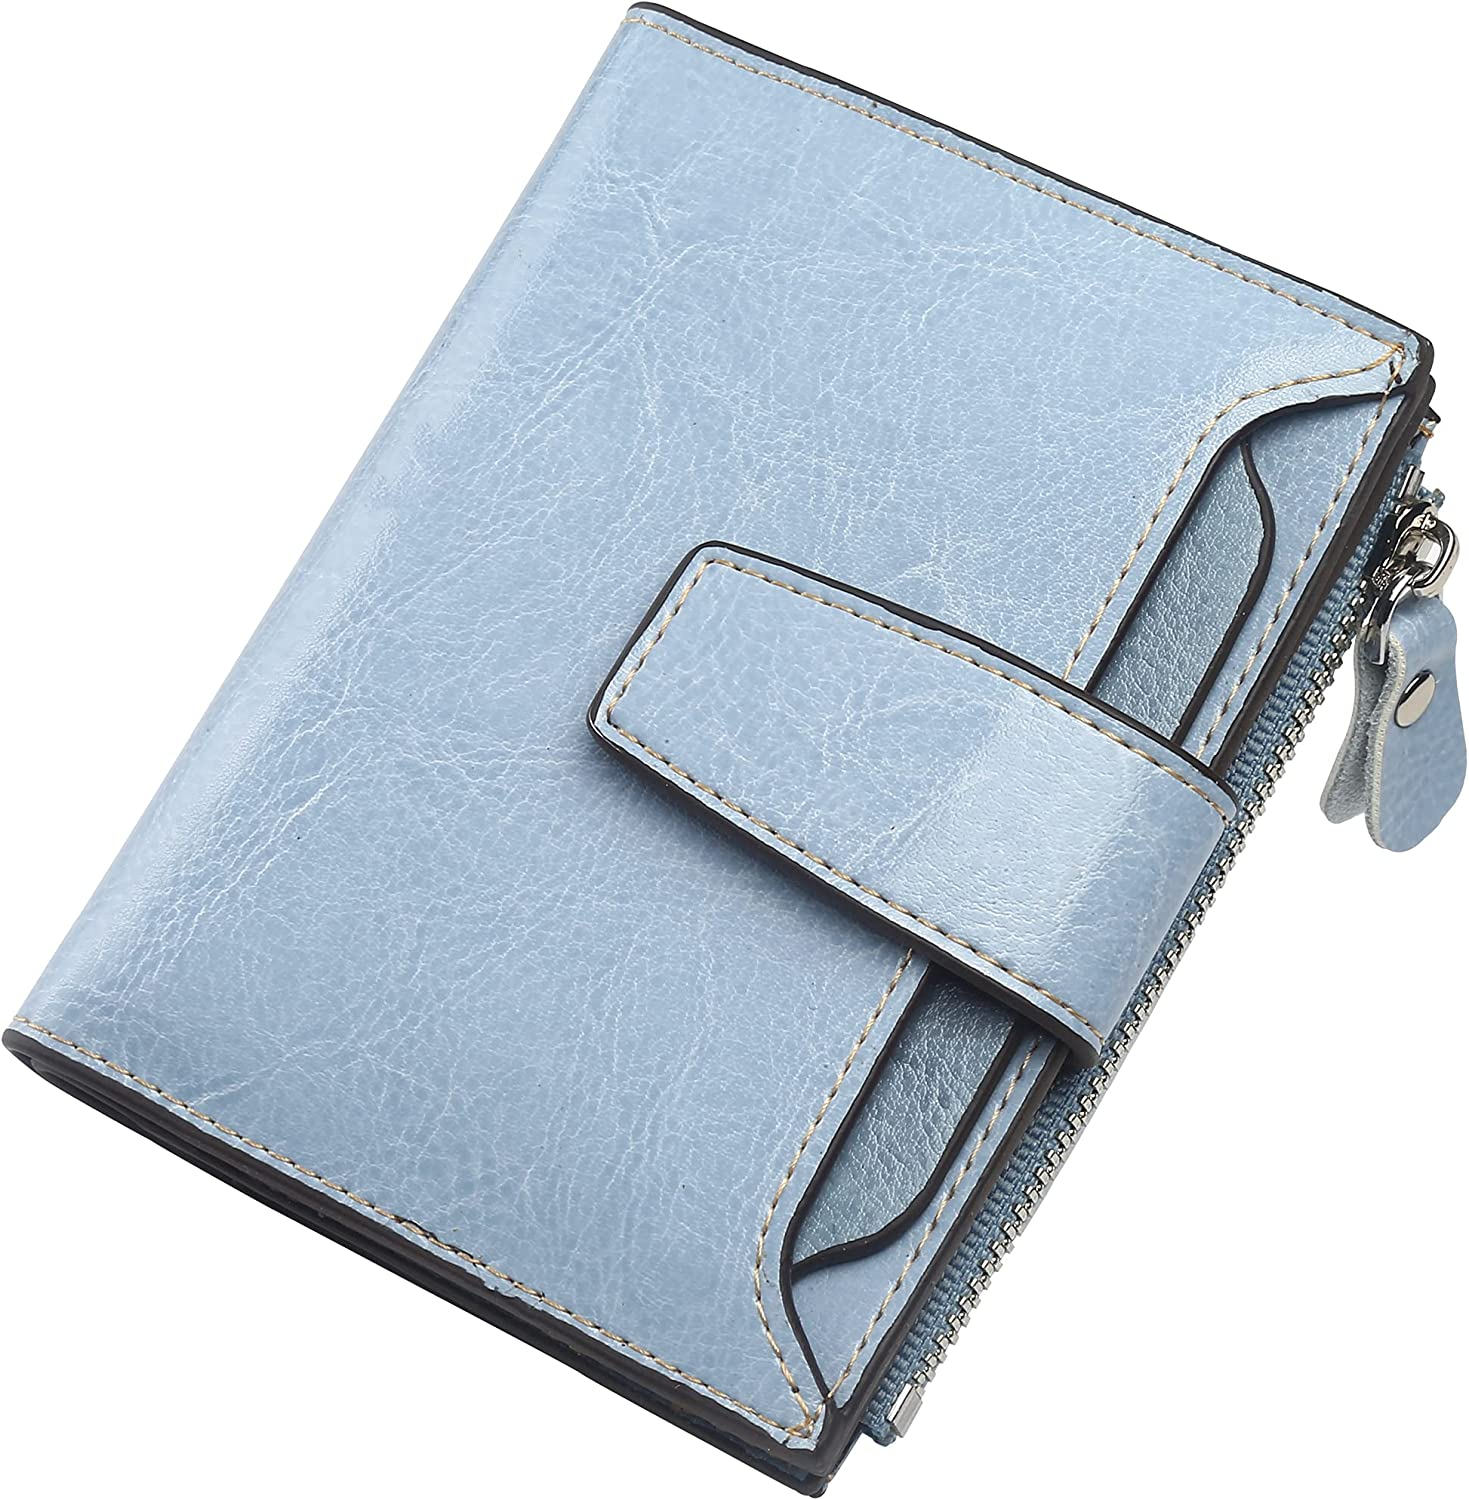 Womens Wallet, Lavemi Leather Wallet RFID Blocking Small Bifold Compact Credit Card Holder for Women with ID Window Zipper Pocket